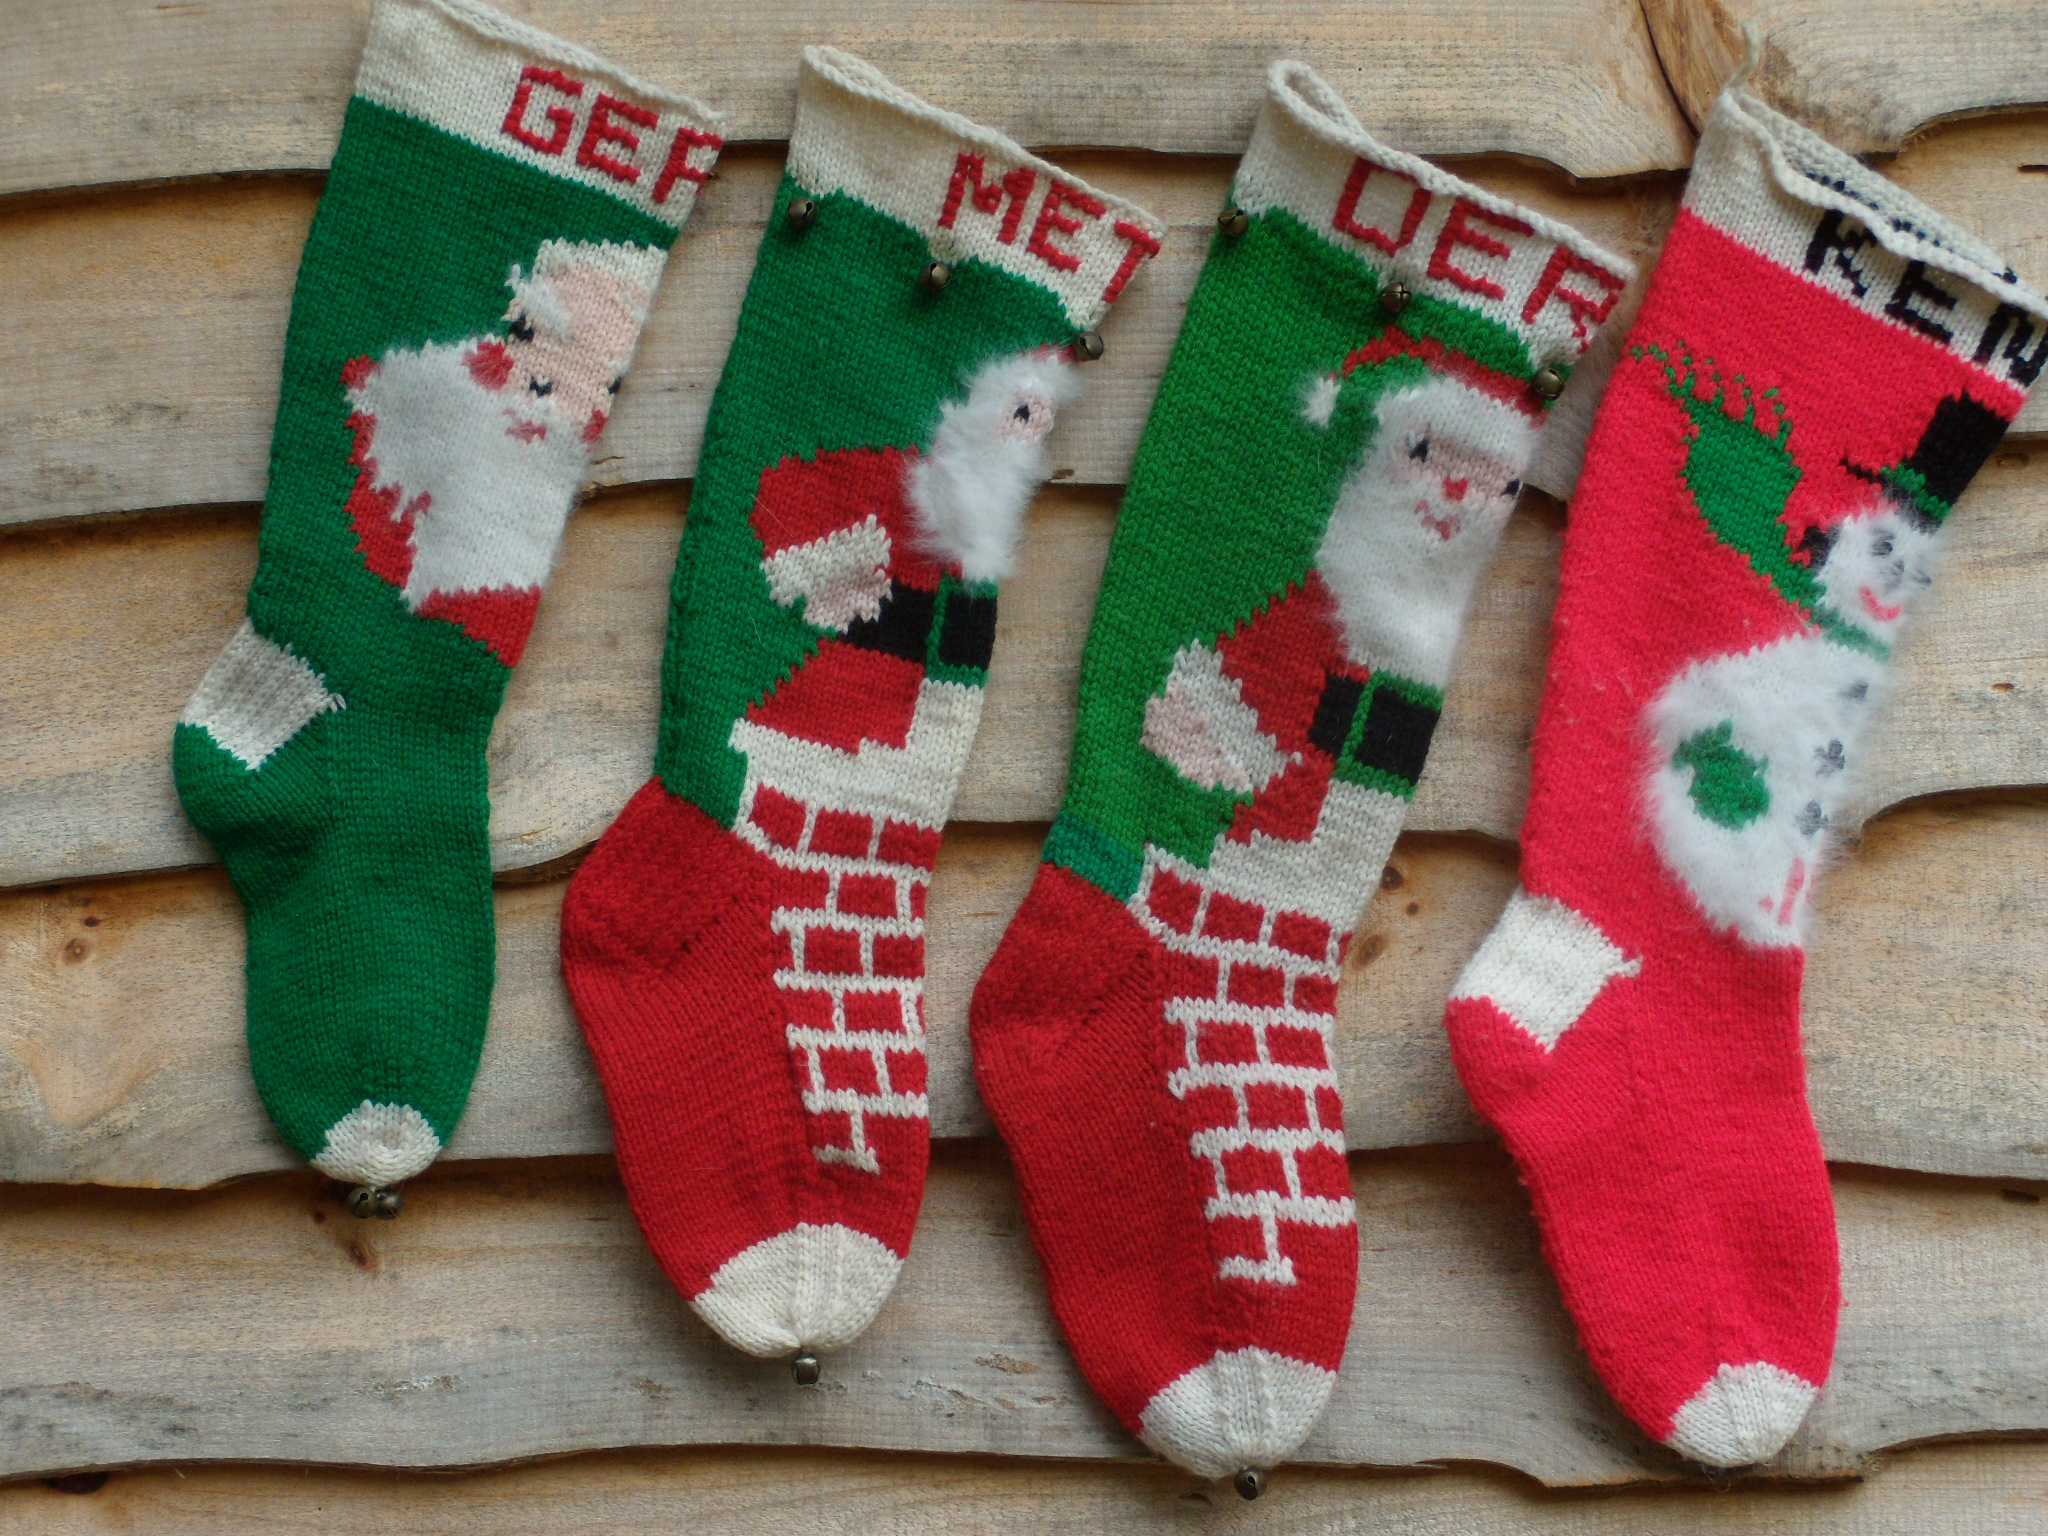 Amazing knit christmas stockings with multicolorful christmas stocking and fireplace at chistmas day interior design